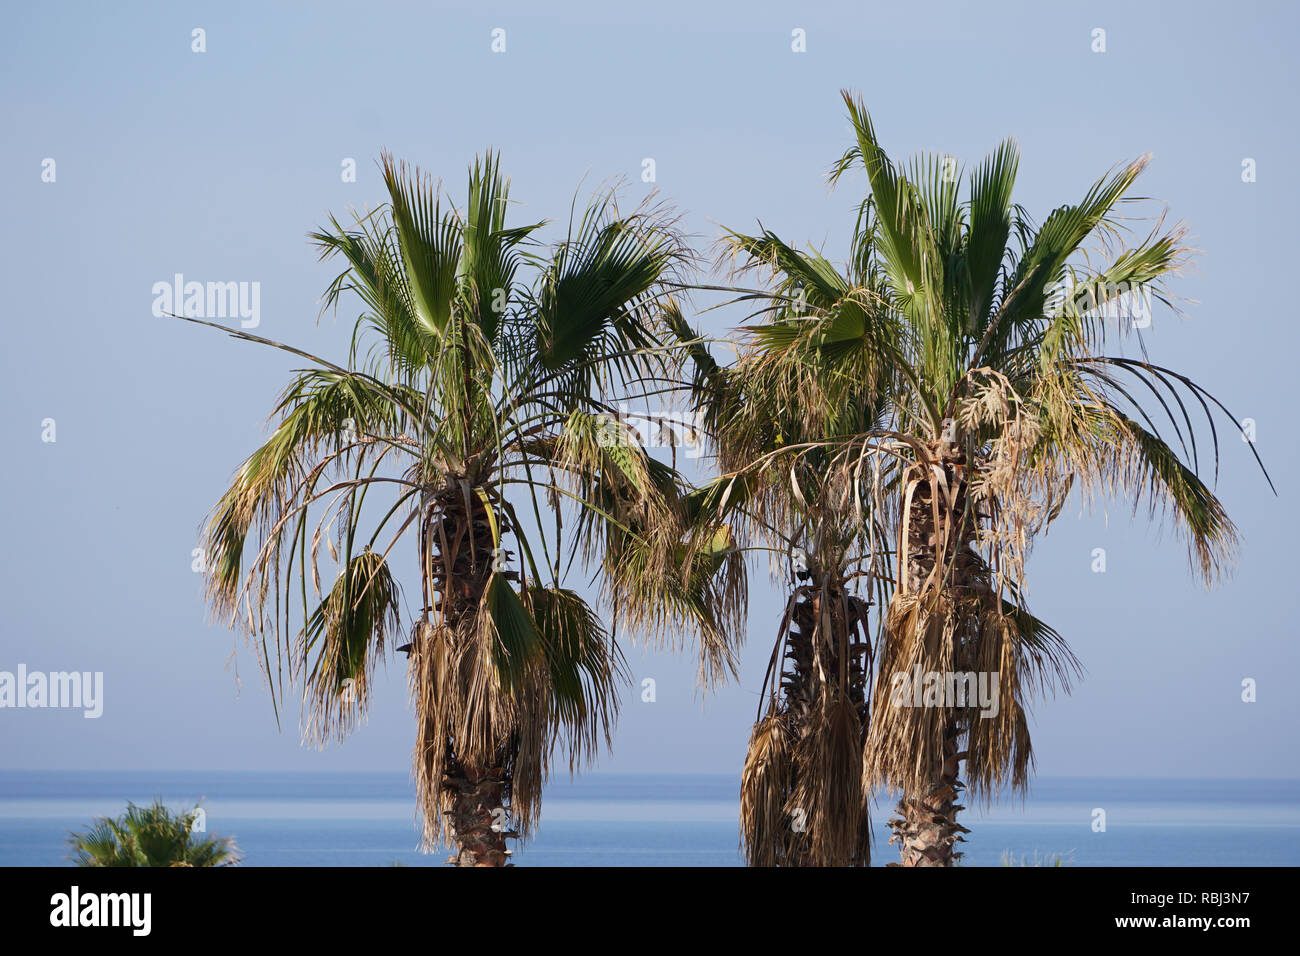 View over palm trees to the ocean Stock Photo